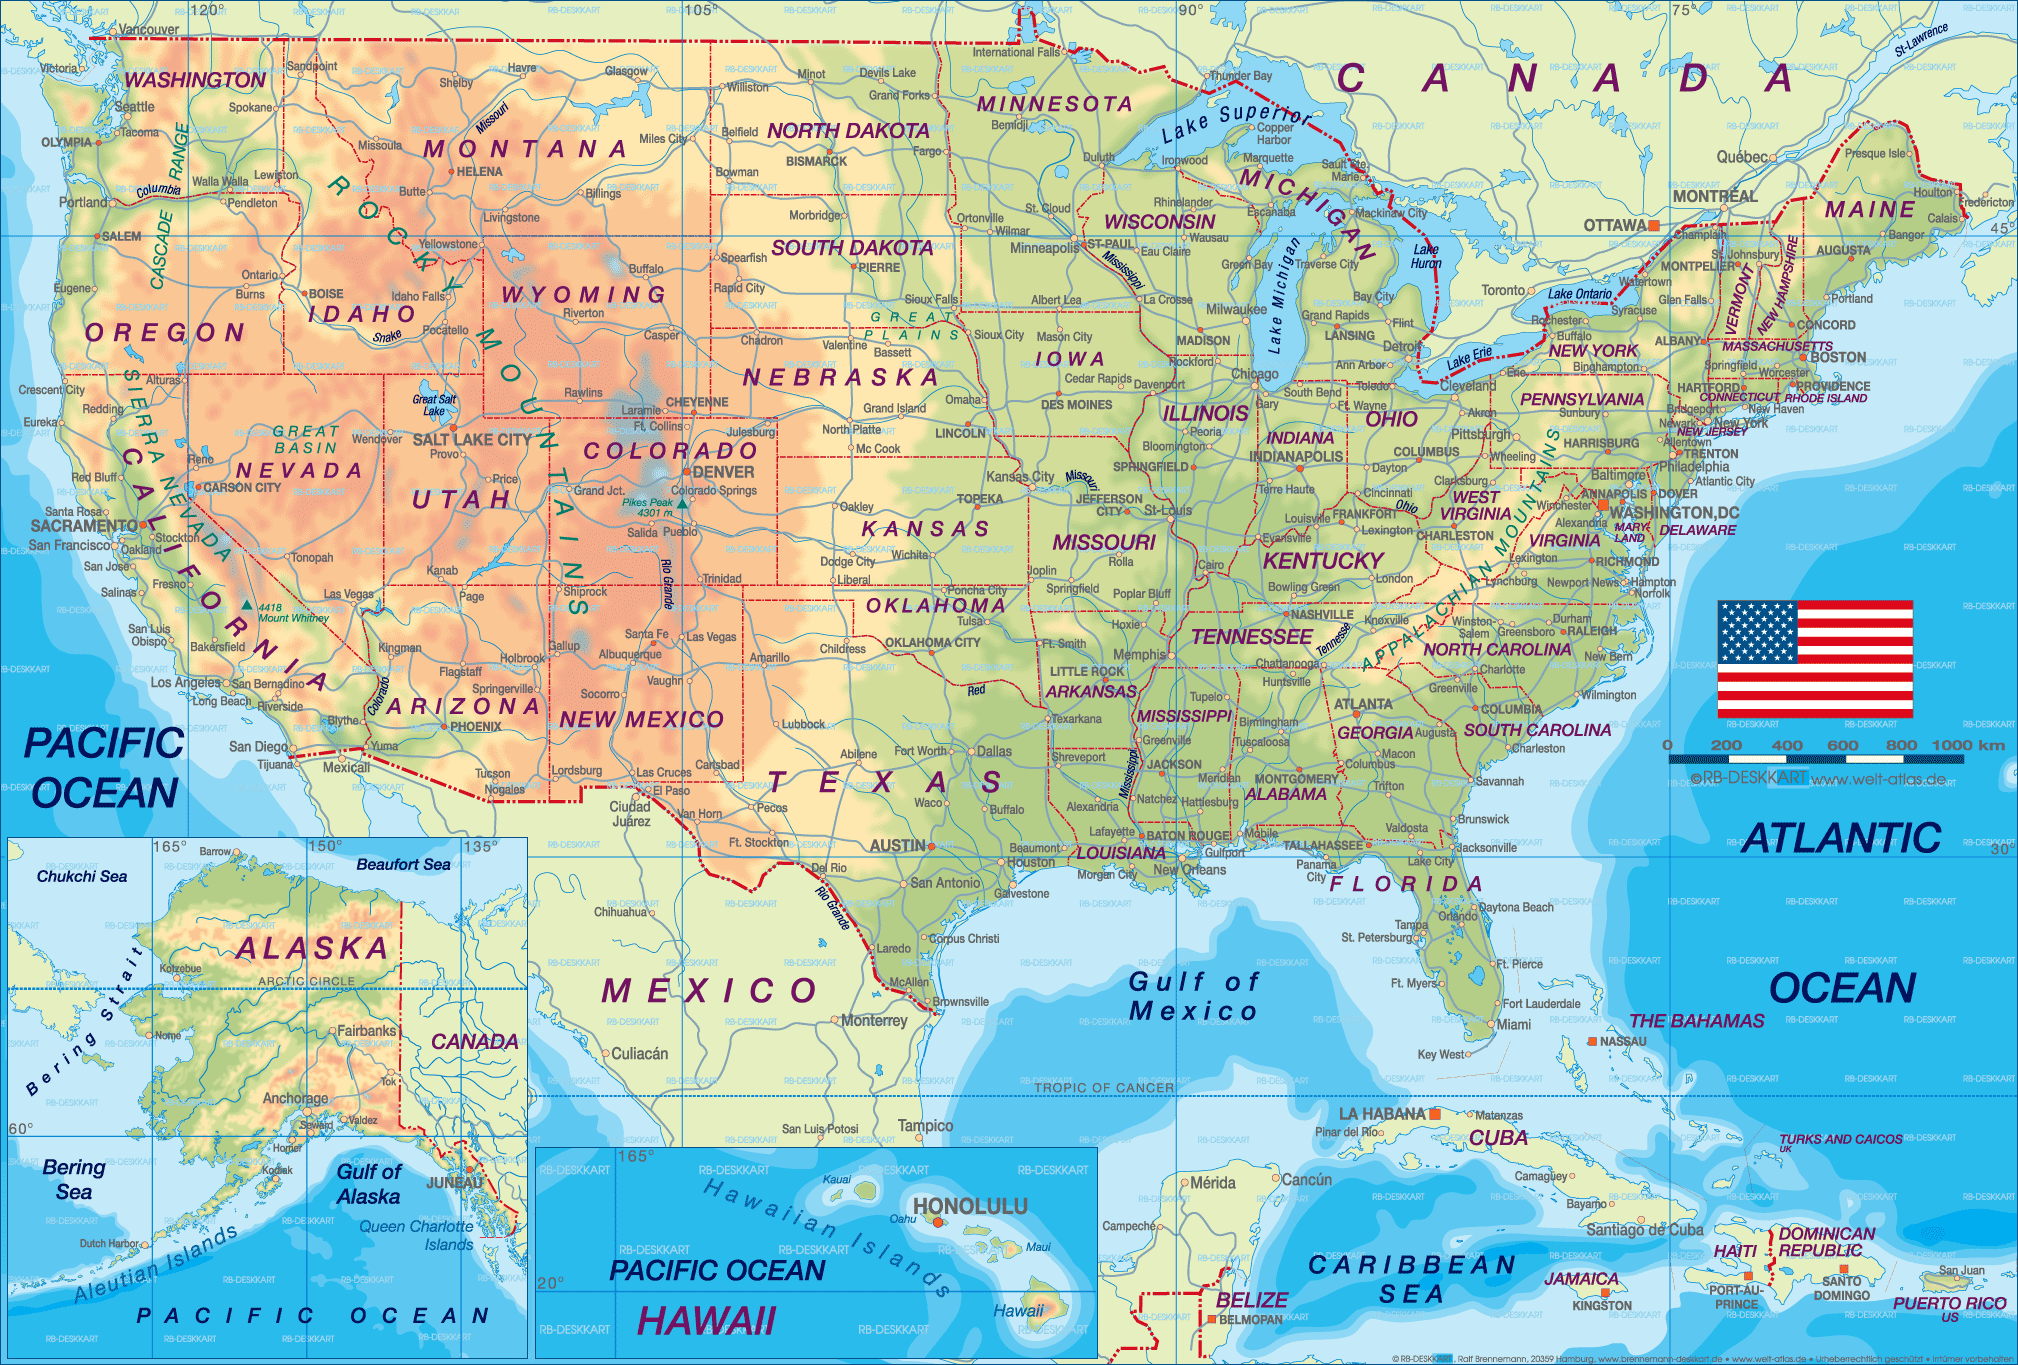 Us Map With States And Cities United States Cities Map • Mapsof.net